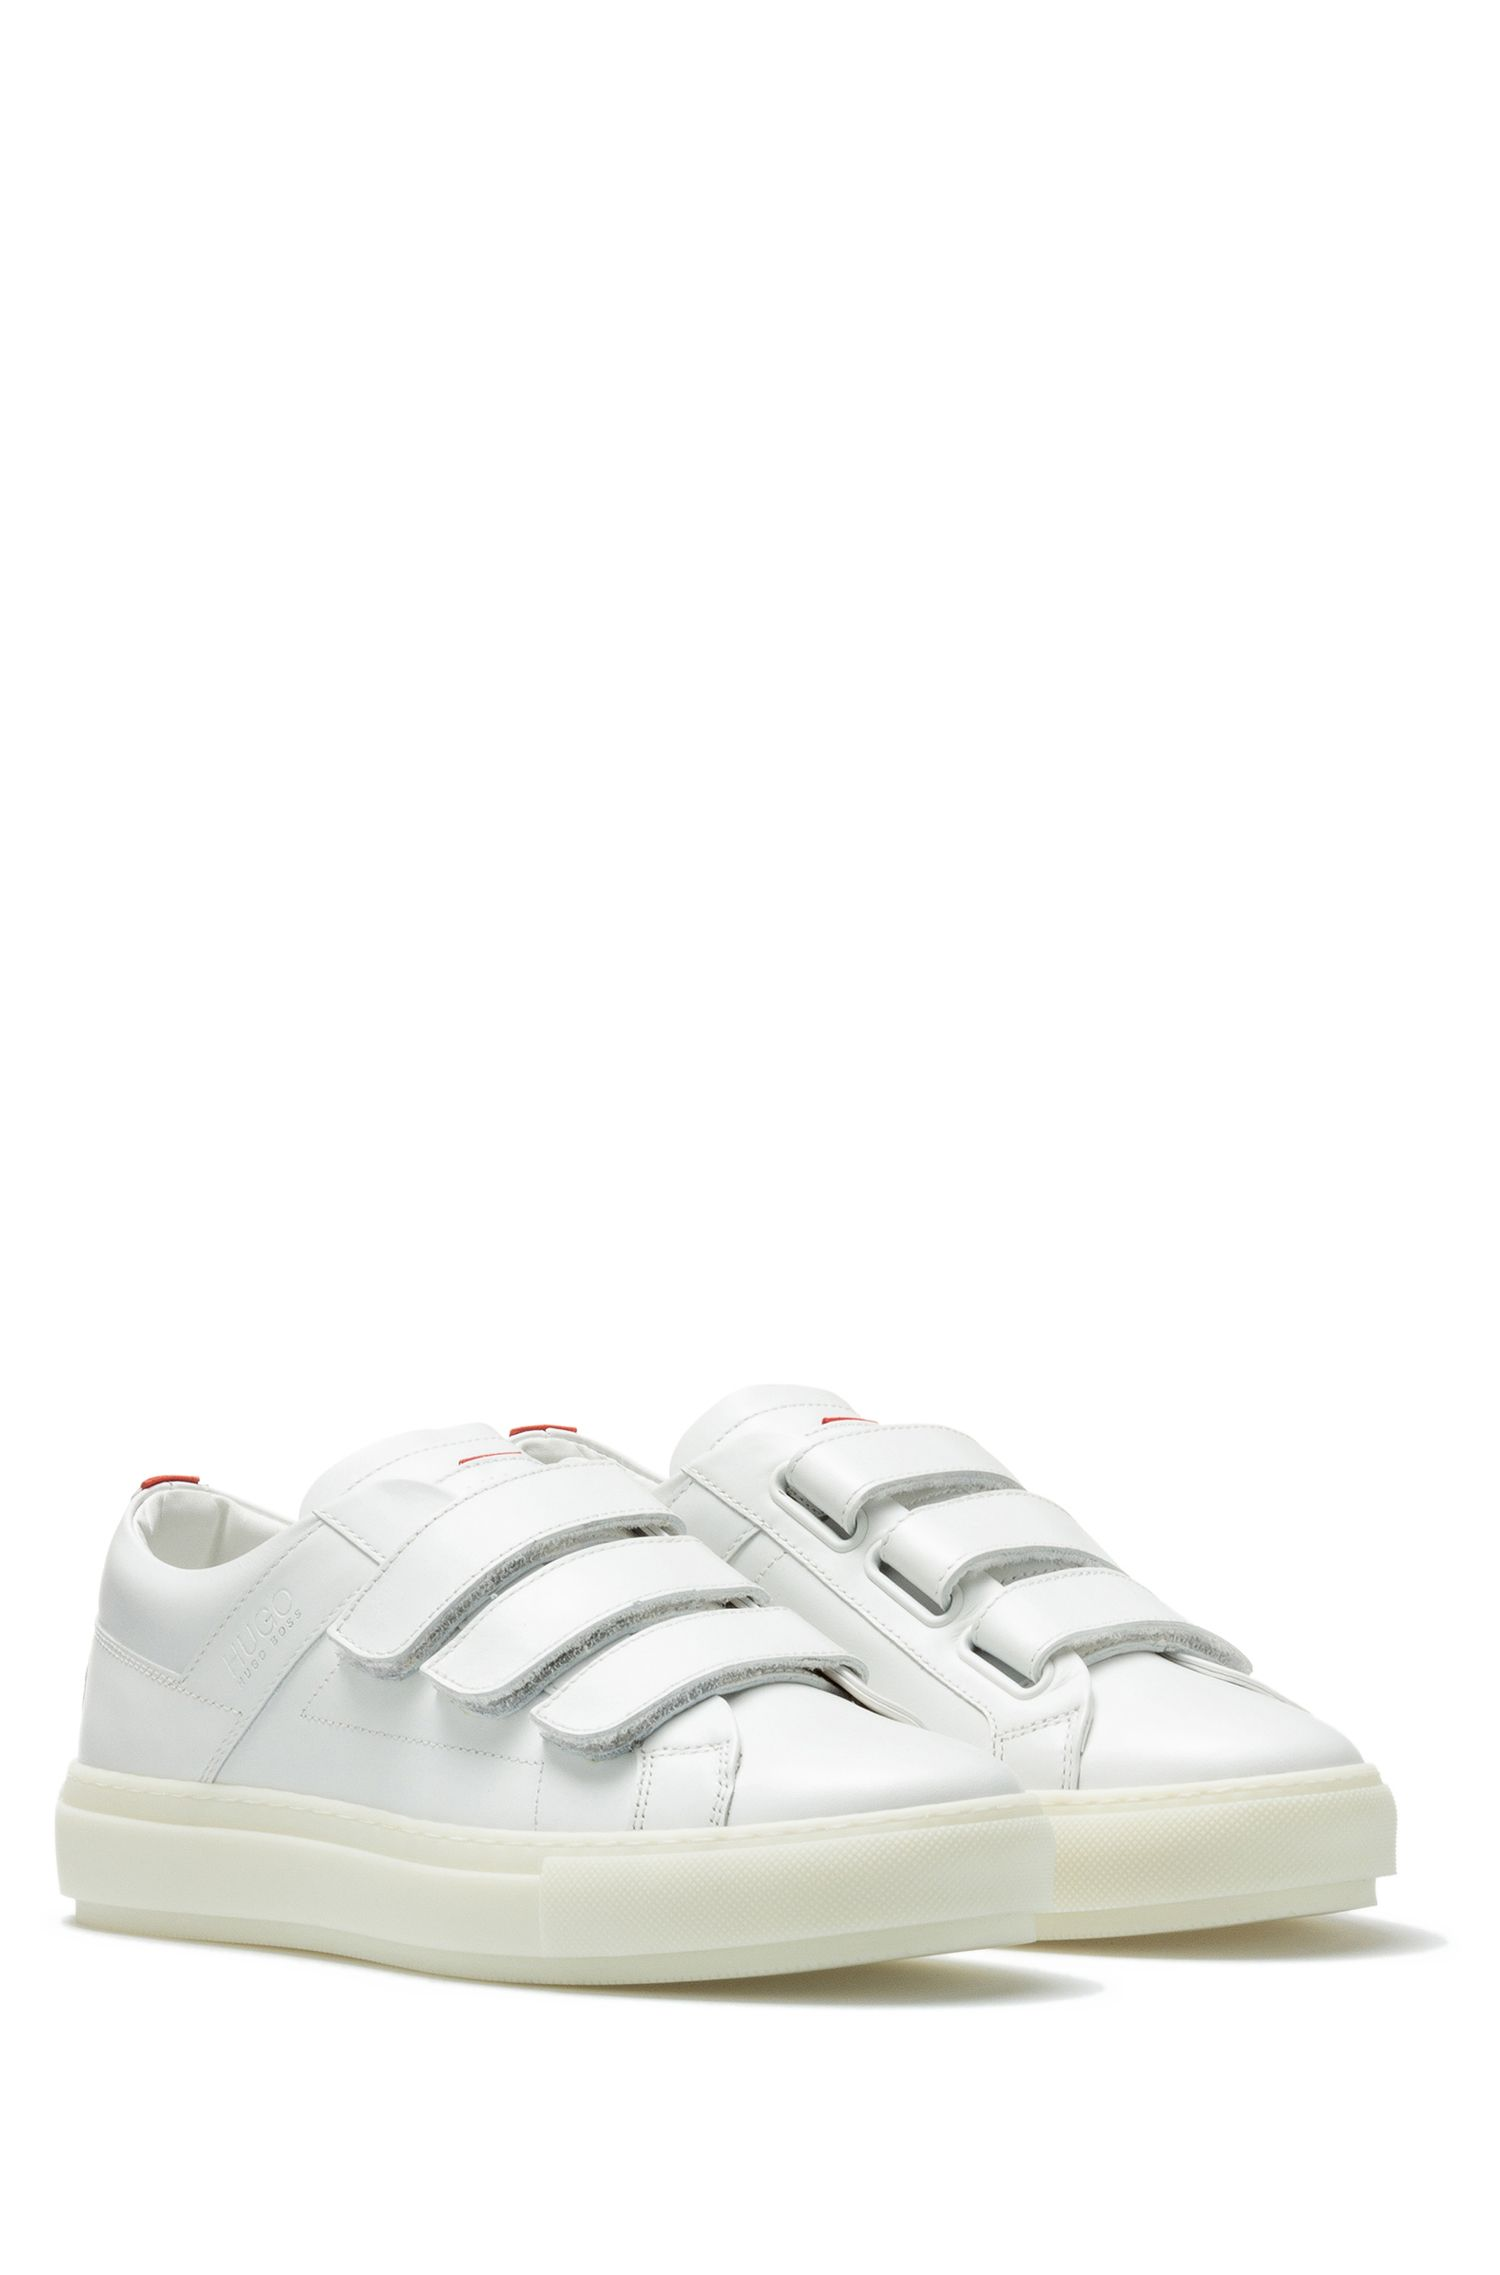 Leather trainers with triple touch-fastening straps